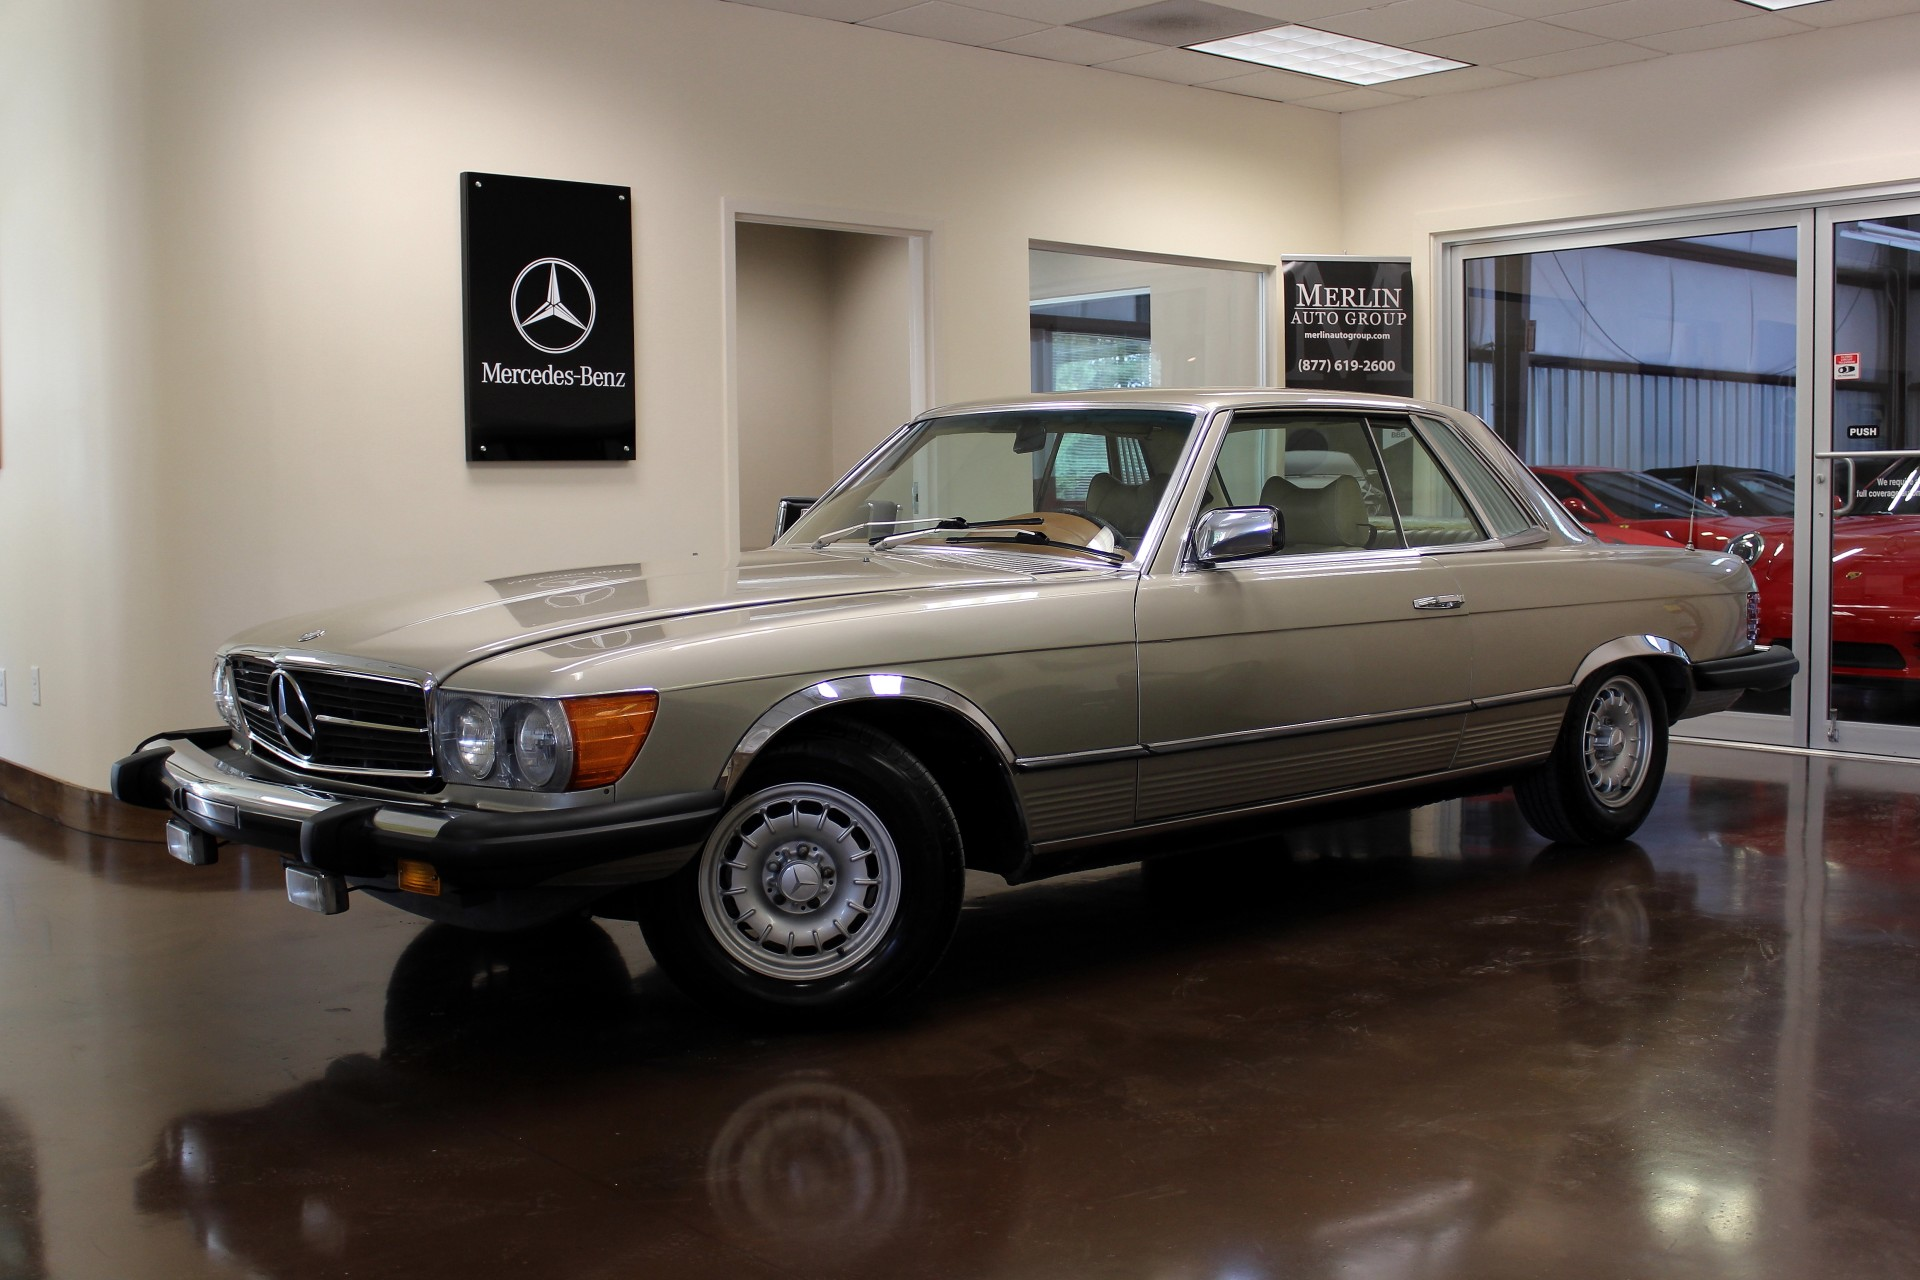 Used 1976 Mercedes-Benz 450 SLC stock P2778 - Ultra Luxury Car from